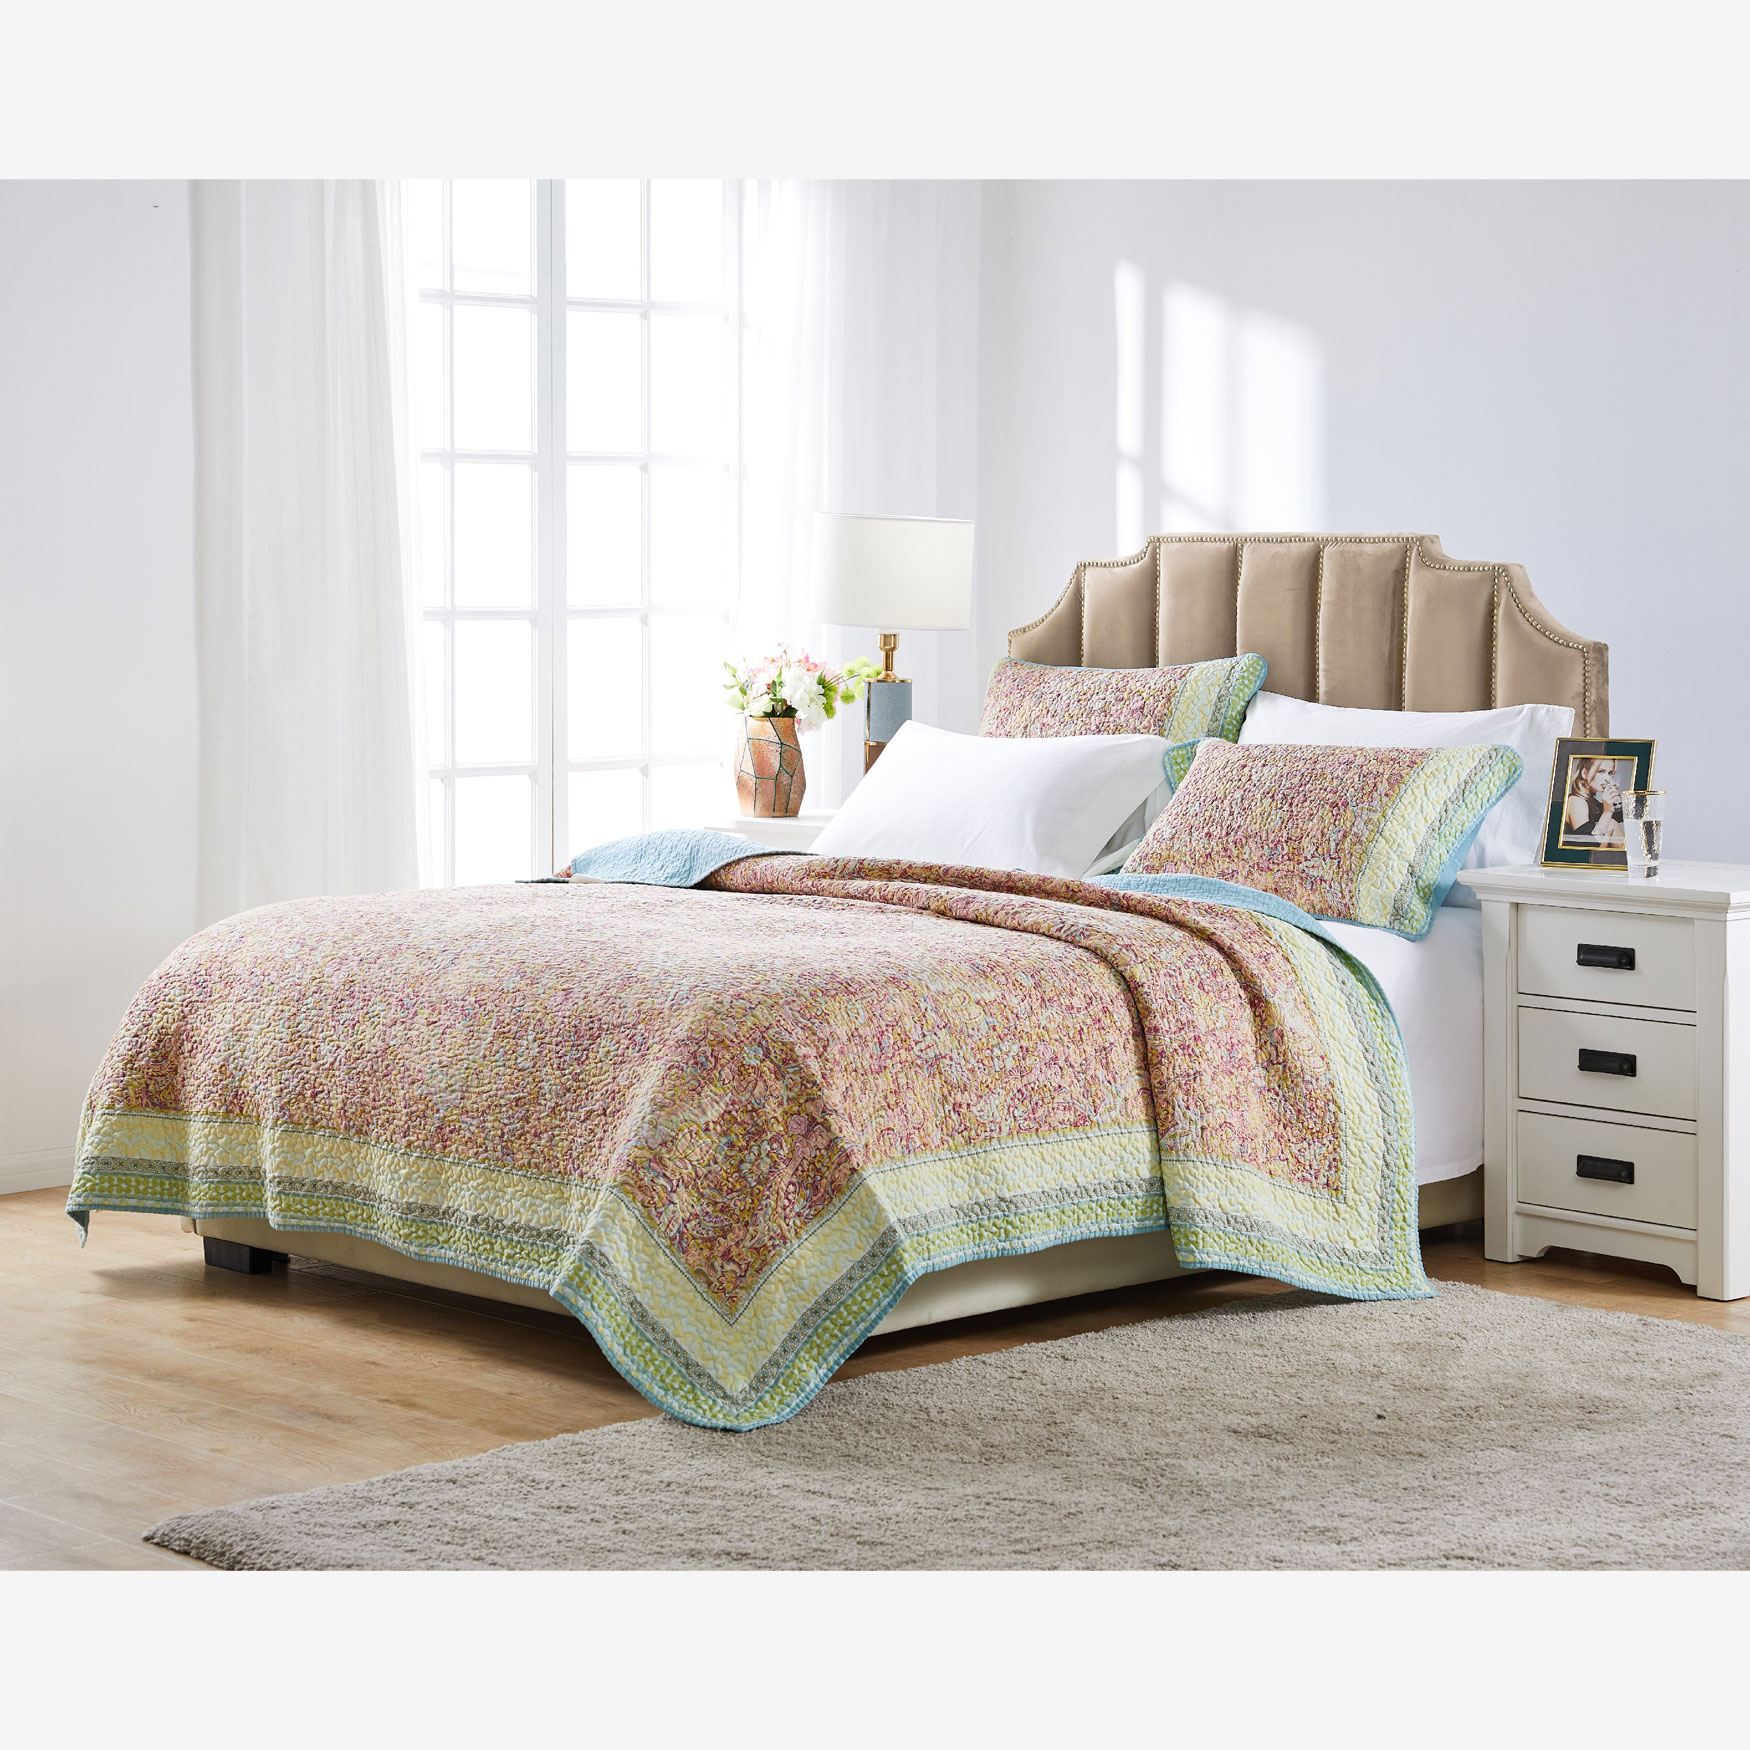 Palisades Bedspread Set by Barefoot Bungalow,